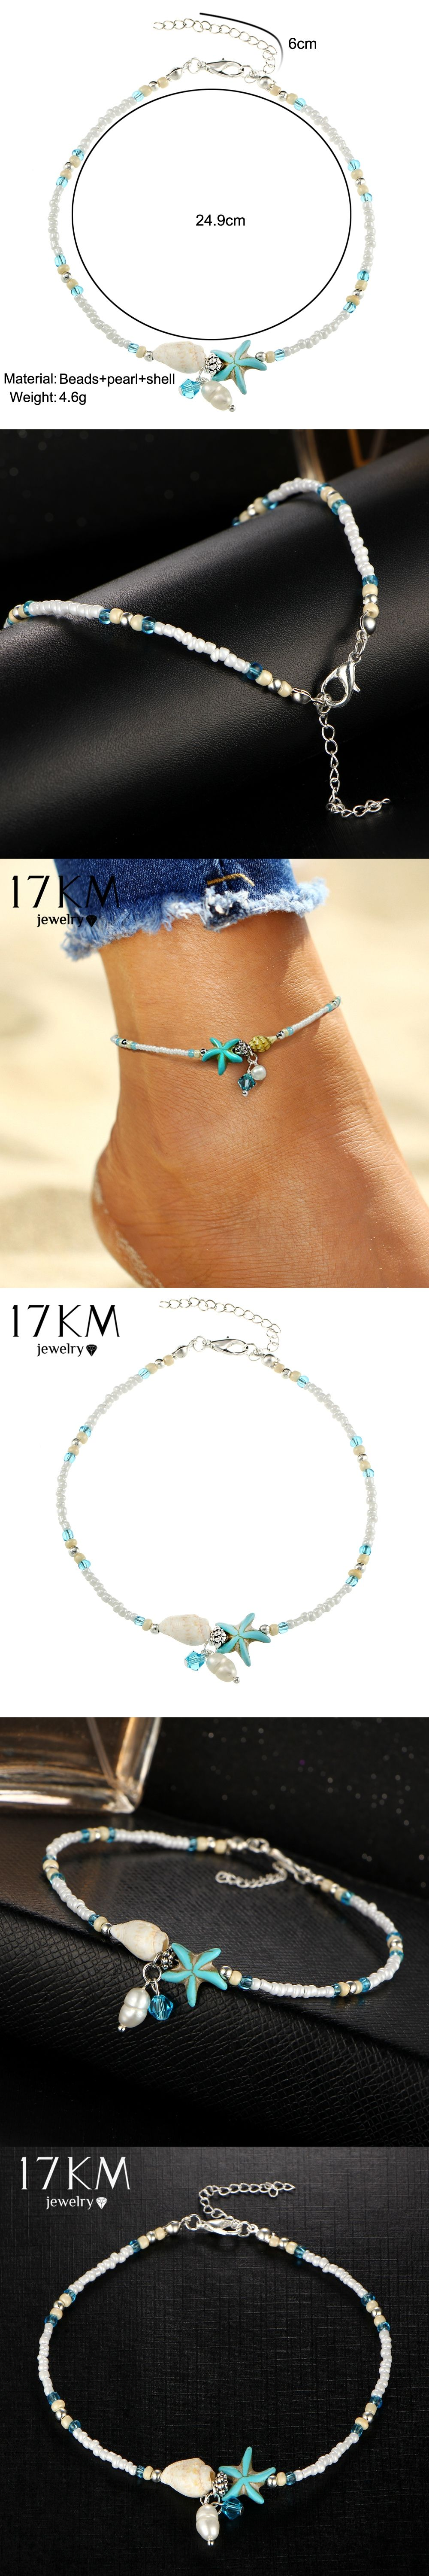 pin chain link charm sanklets woman cross anklet women accessories